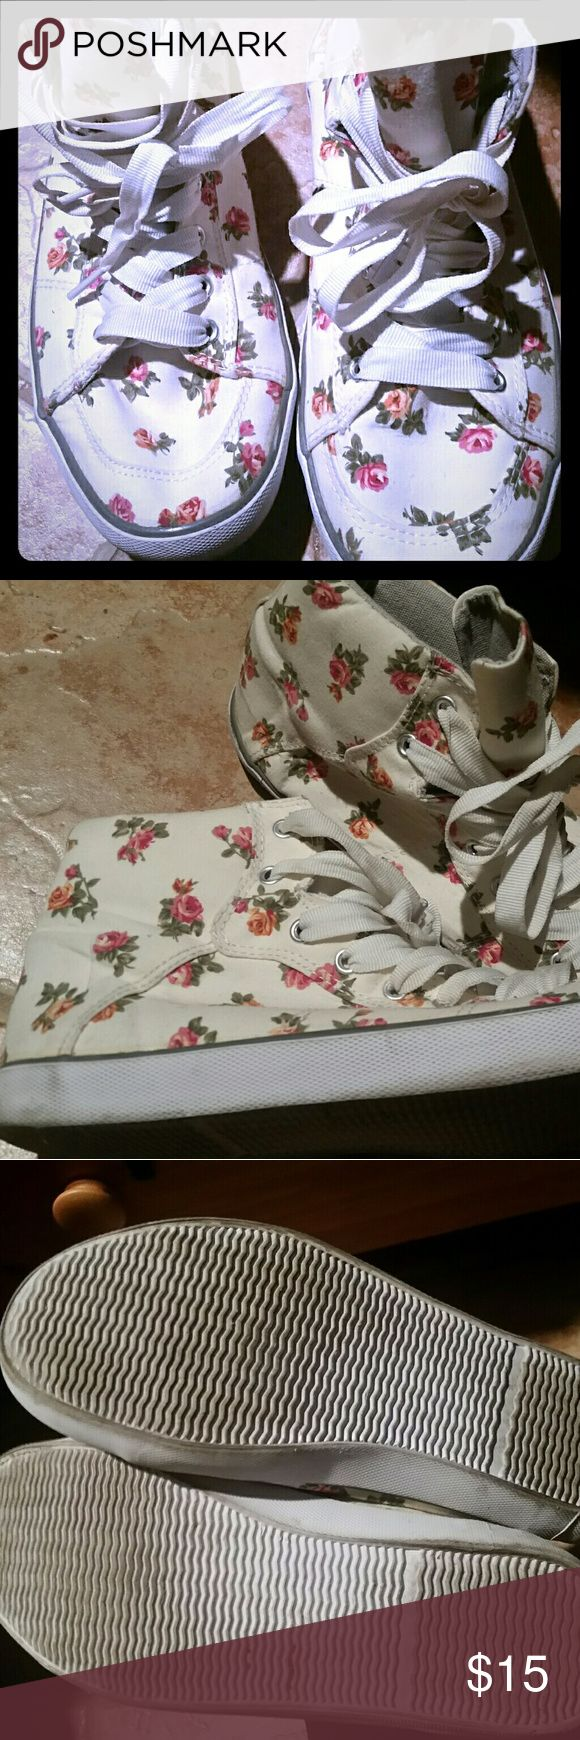 Joe Brown's tennies Pretty white tenures with pink roses, something to wear with a dress, keeping it girly. In very nice condition. Joe Browns Shoes Sneakers